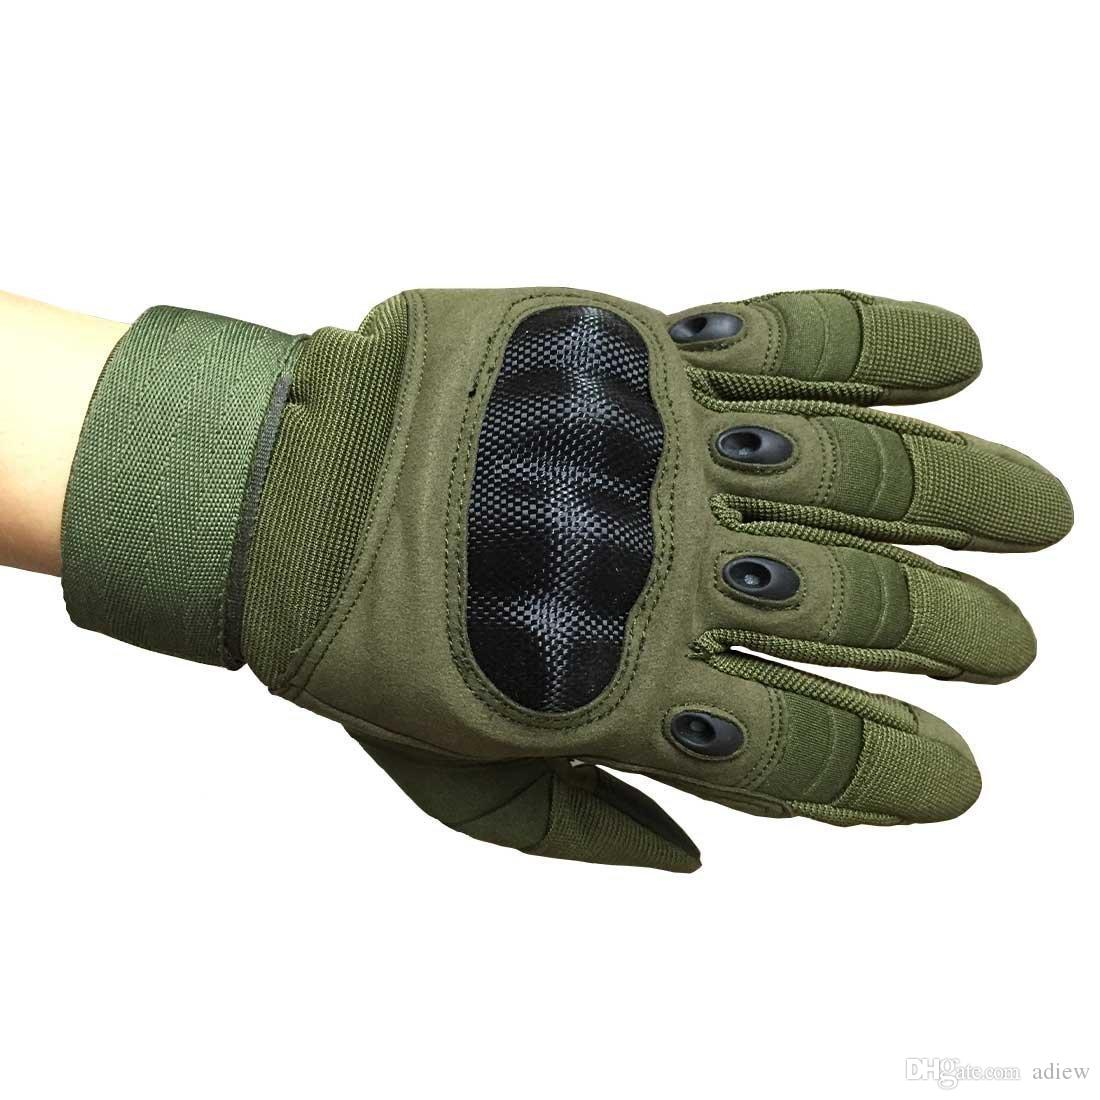 TouchScreen Tactical Gloves Military Hard Knuckle Outdoor Gloves Men Fit Cycling Motorcycle Hiking Camping Powersports Airsoft Paintball